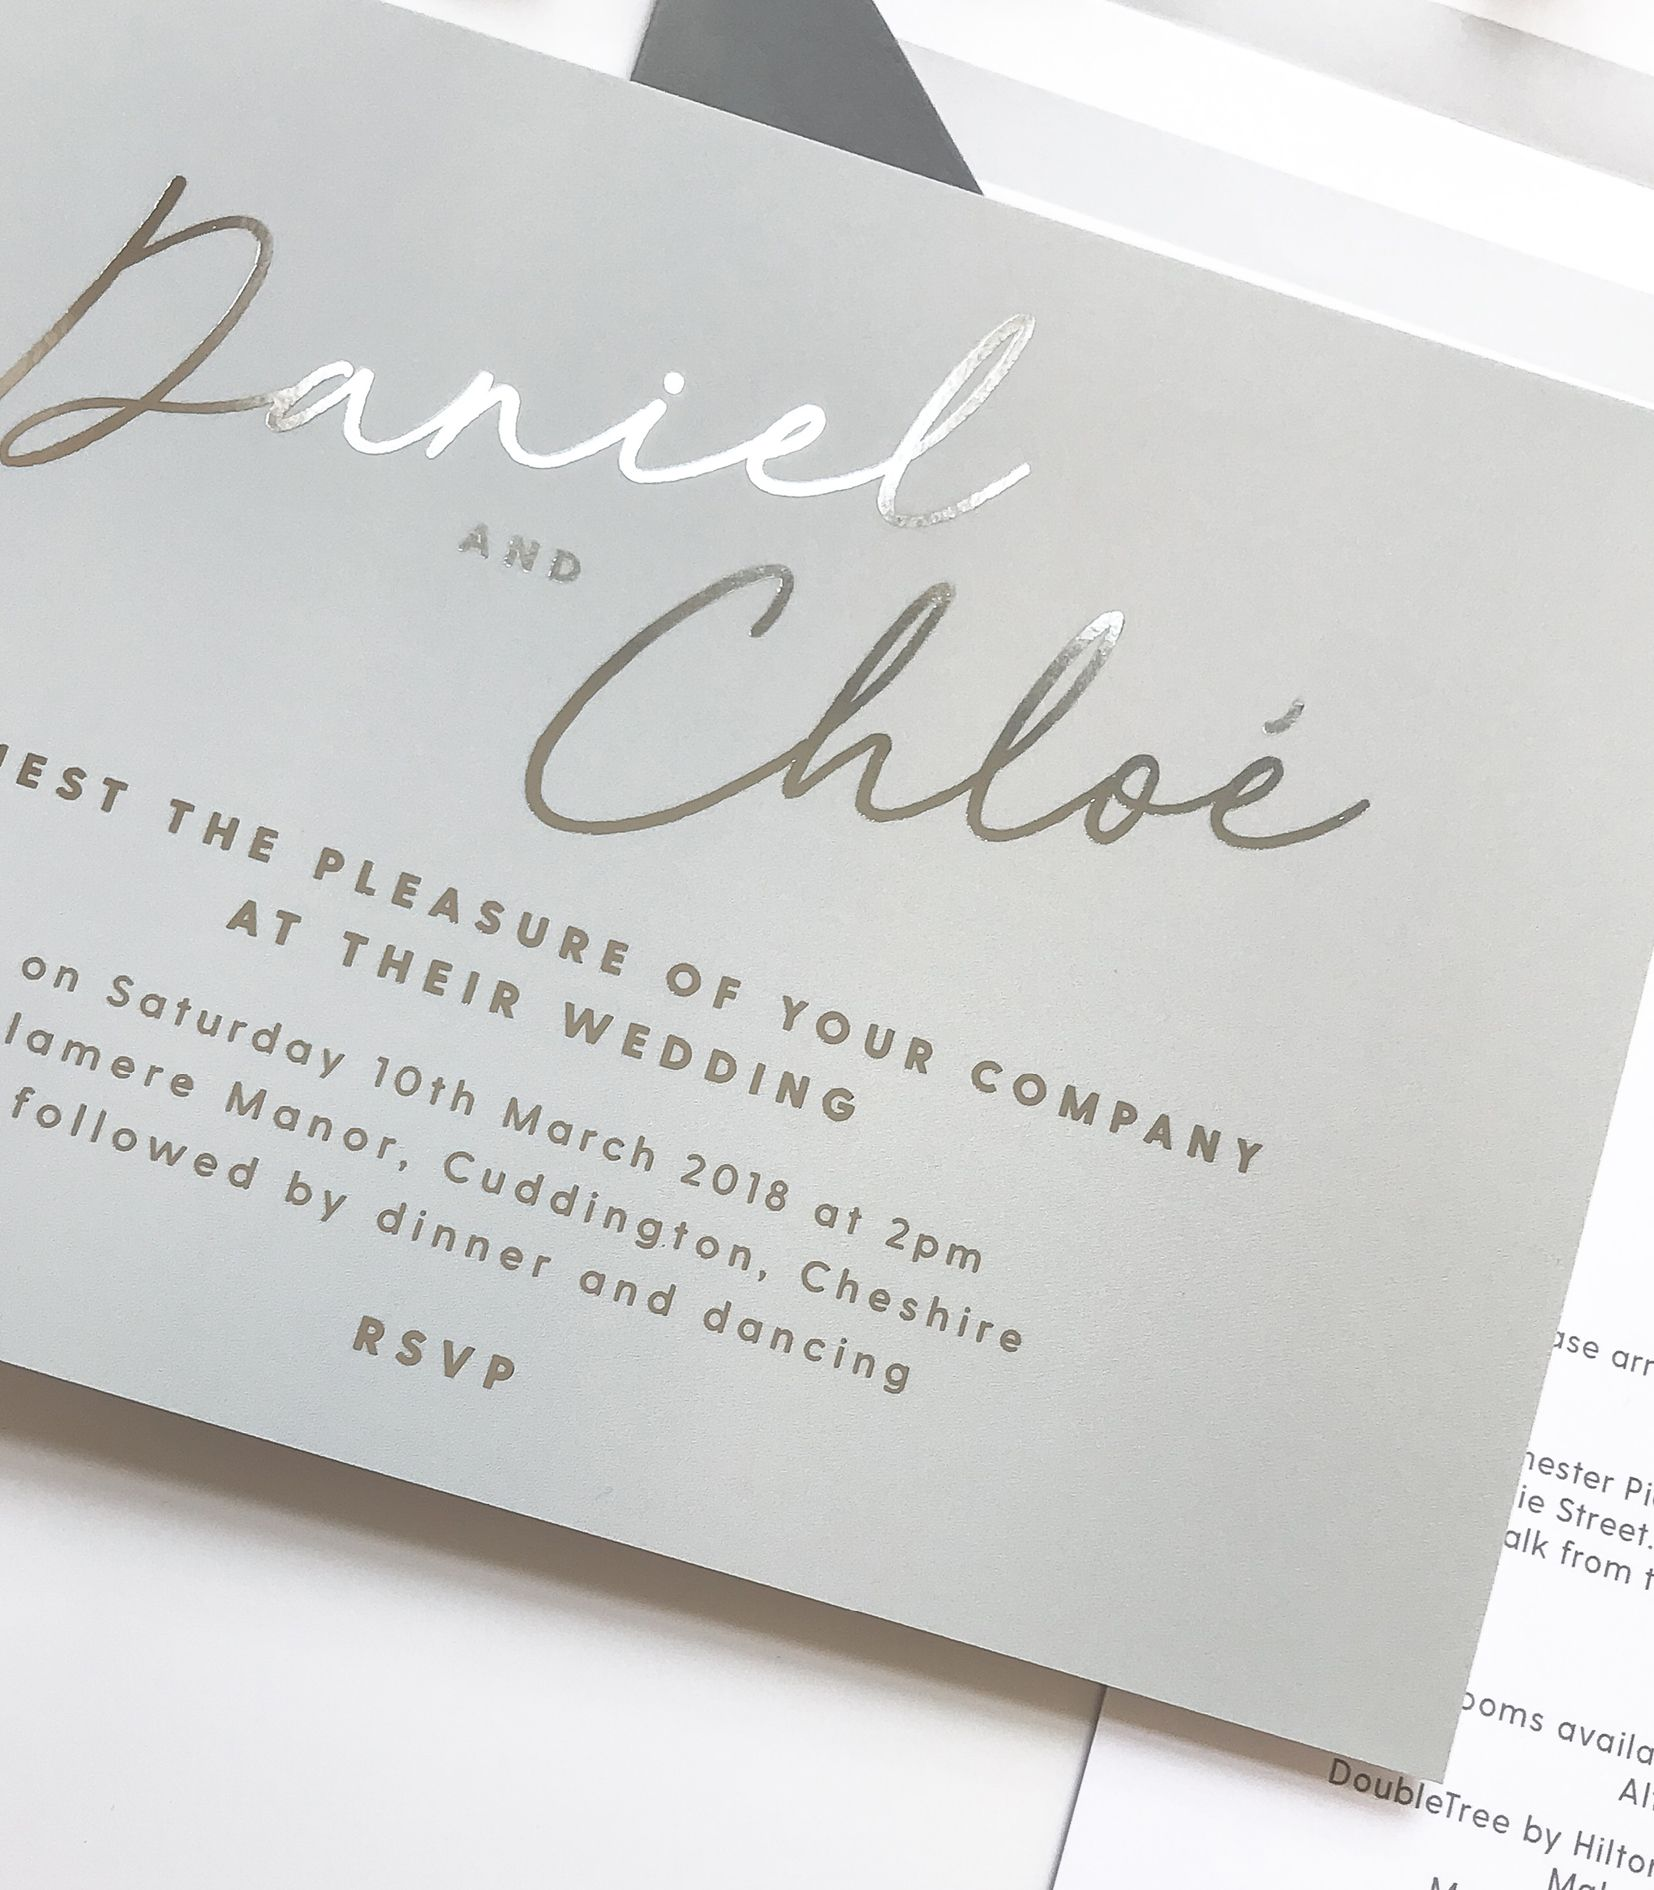 Rachel foil printed Wedding Invitations | Belly bands, Weddings and ...